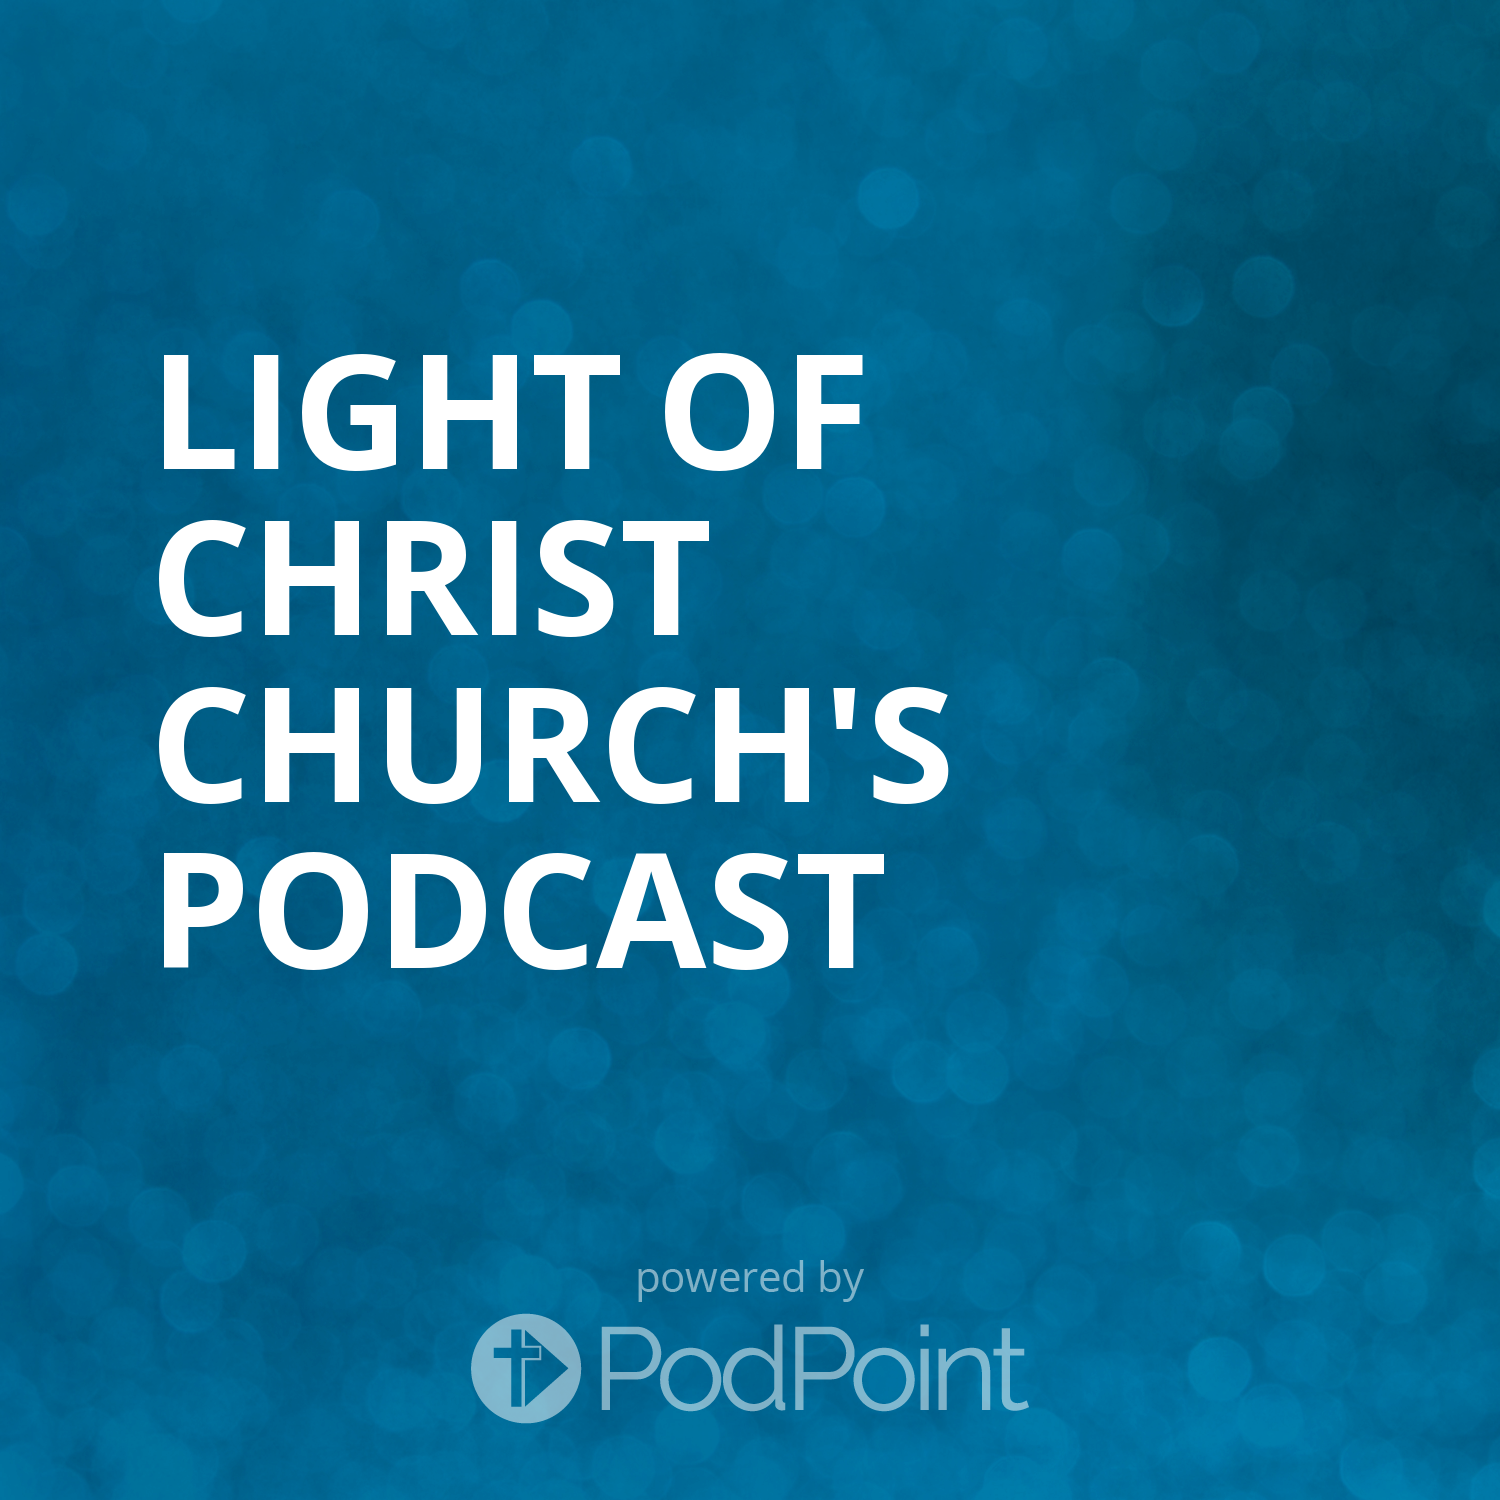 Light of Christ Church's Podcast